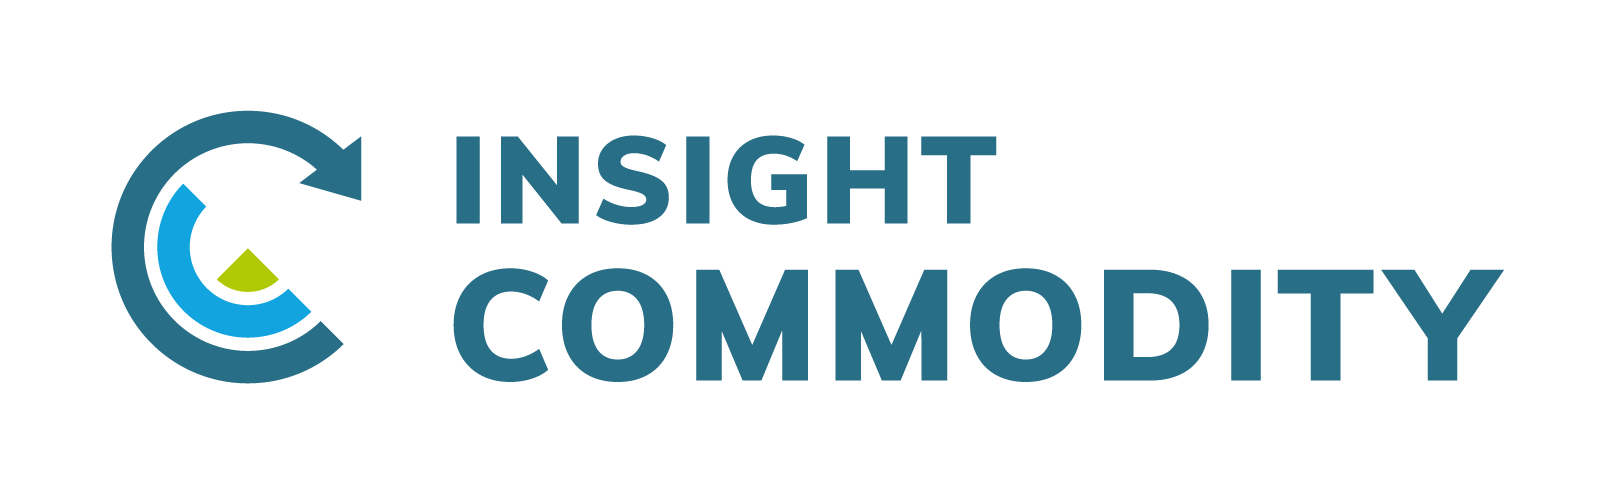 insight commodity logo